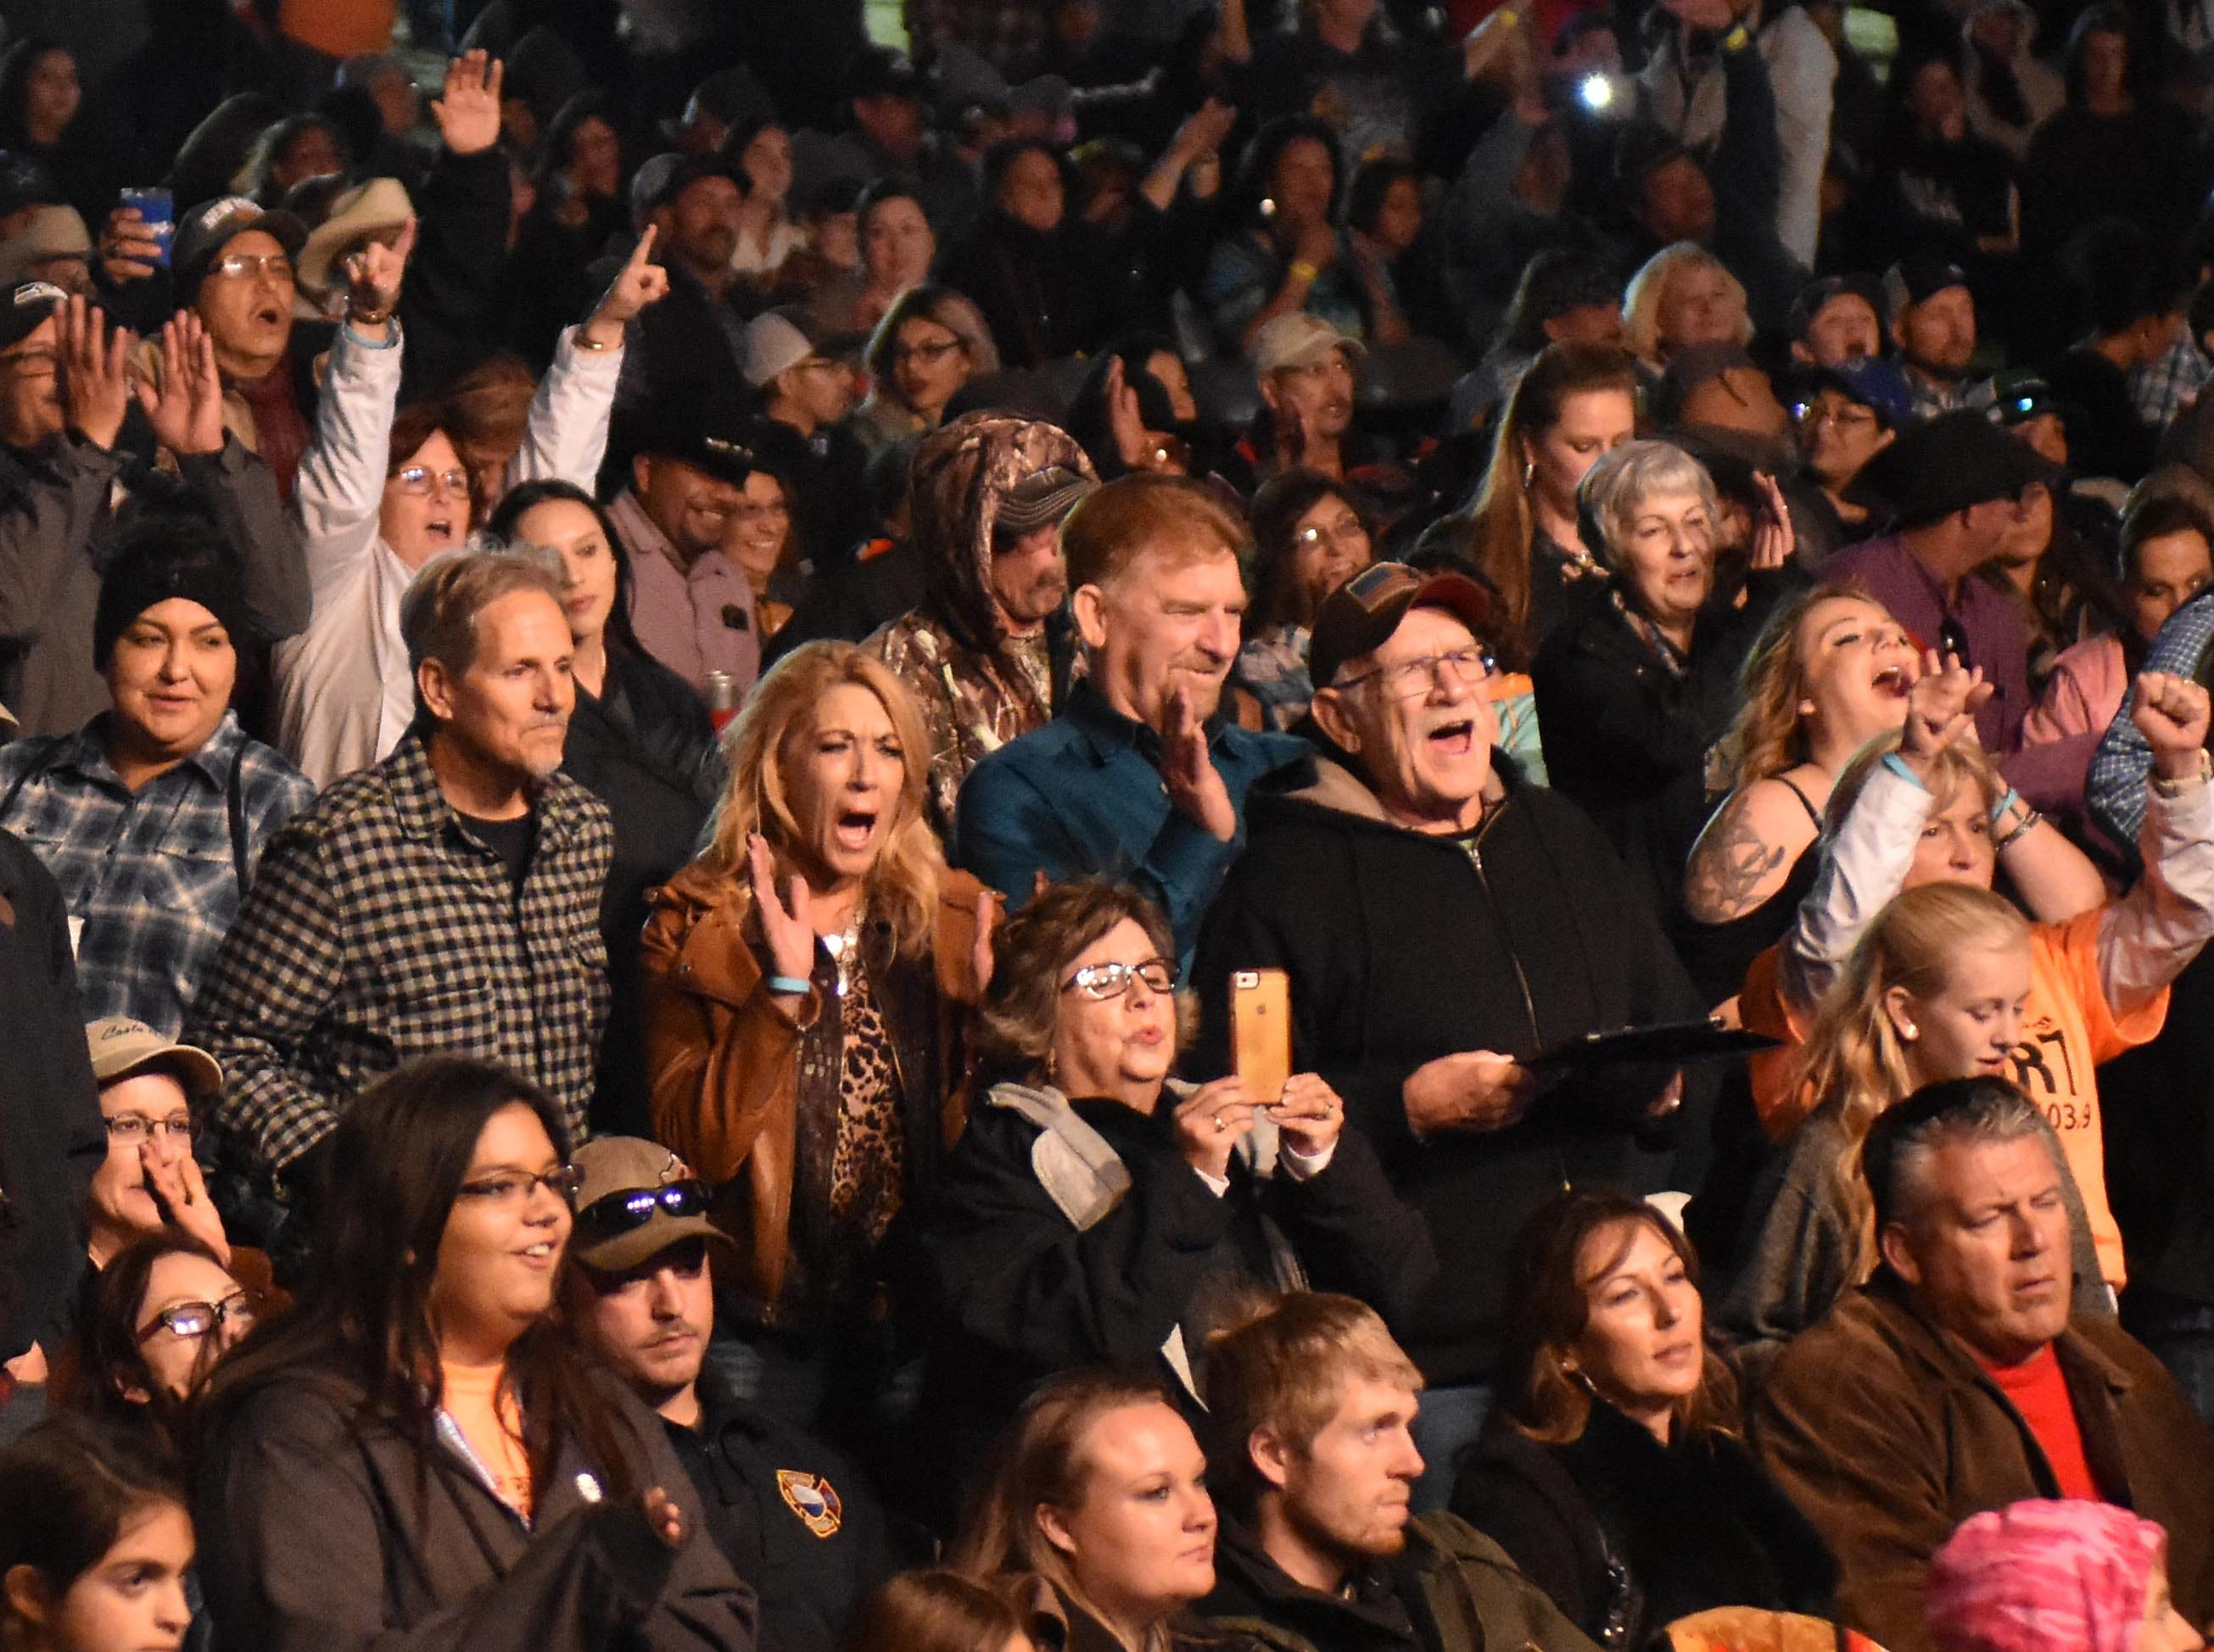 The crowd watching Sawyer Brown reacts during the Las Cruces Country Music Festival on Saturday, Oct. 20, 2018.